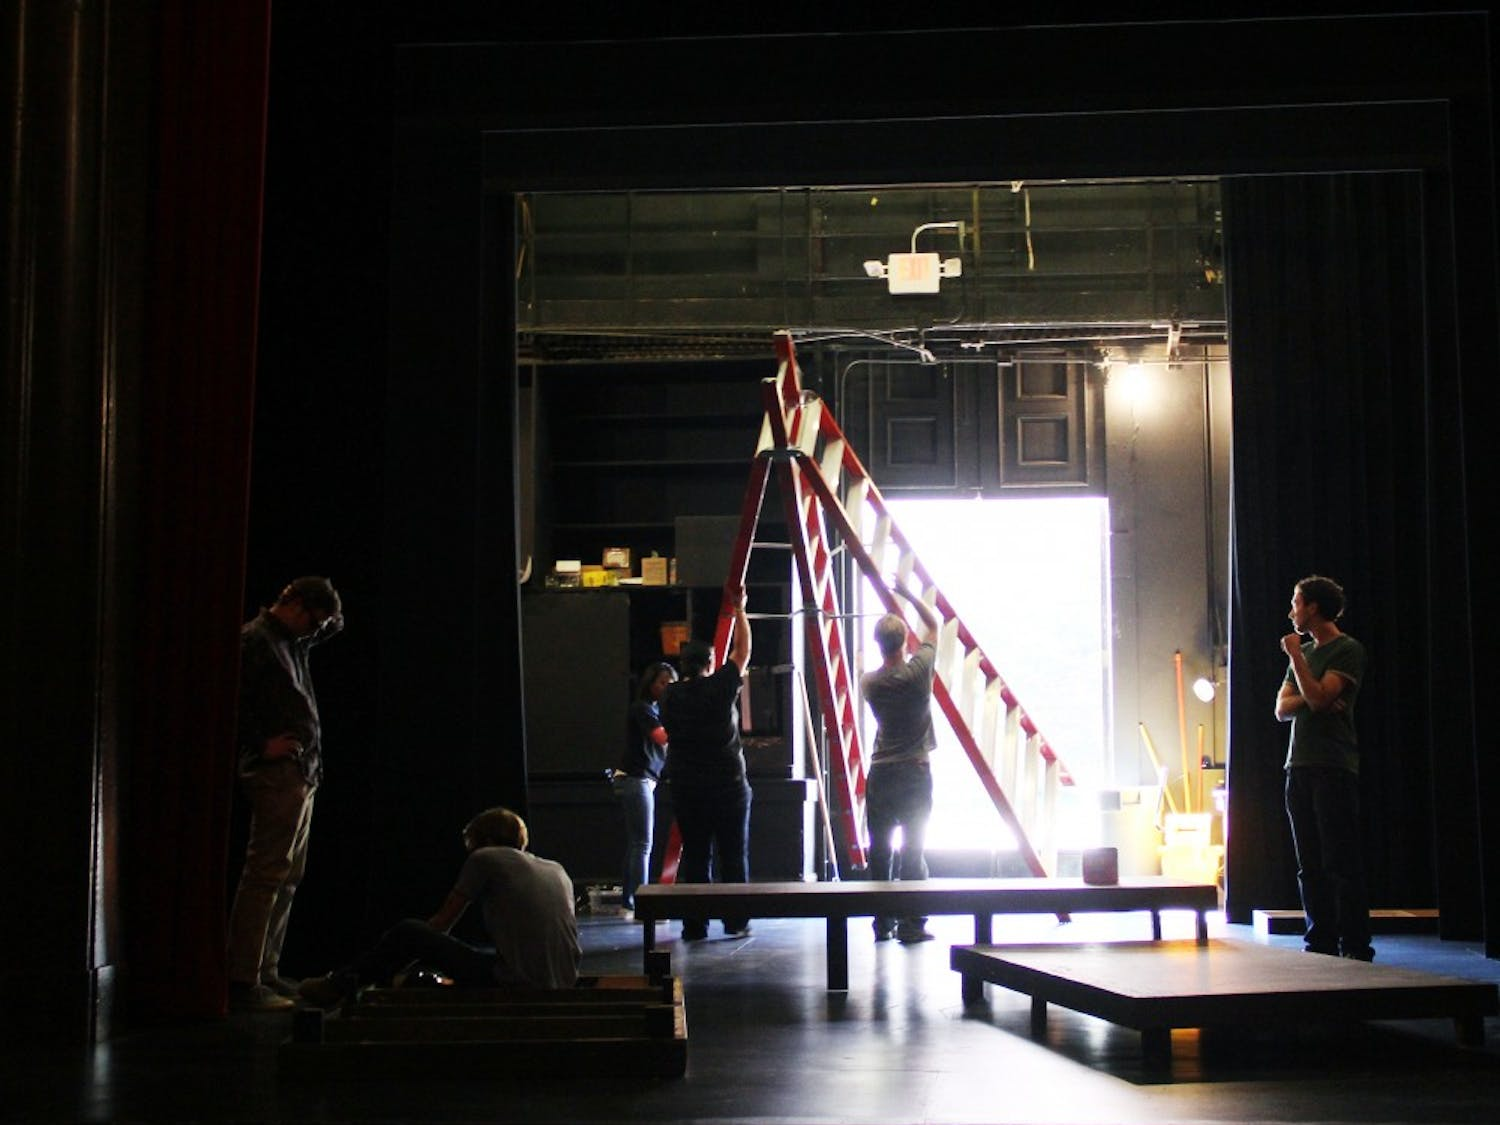 Members of the production staff help assemble pieces of the set for Doubt.